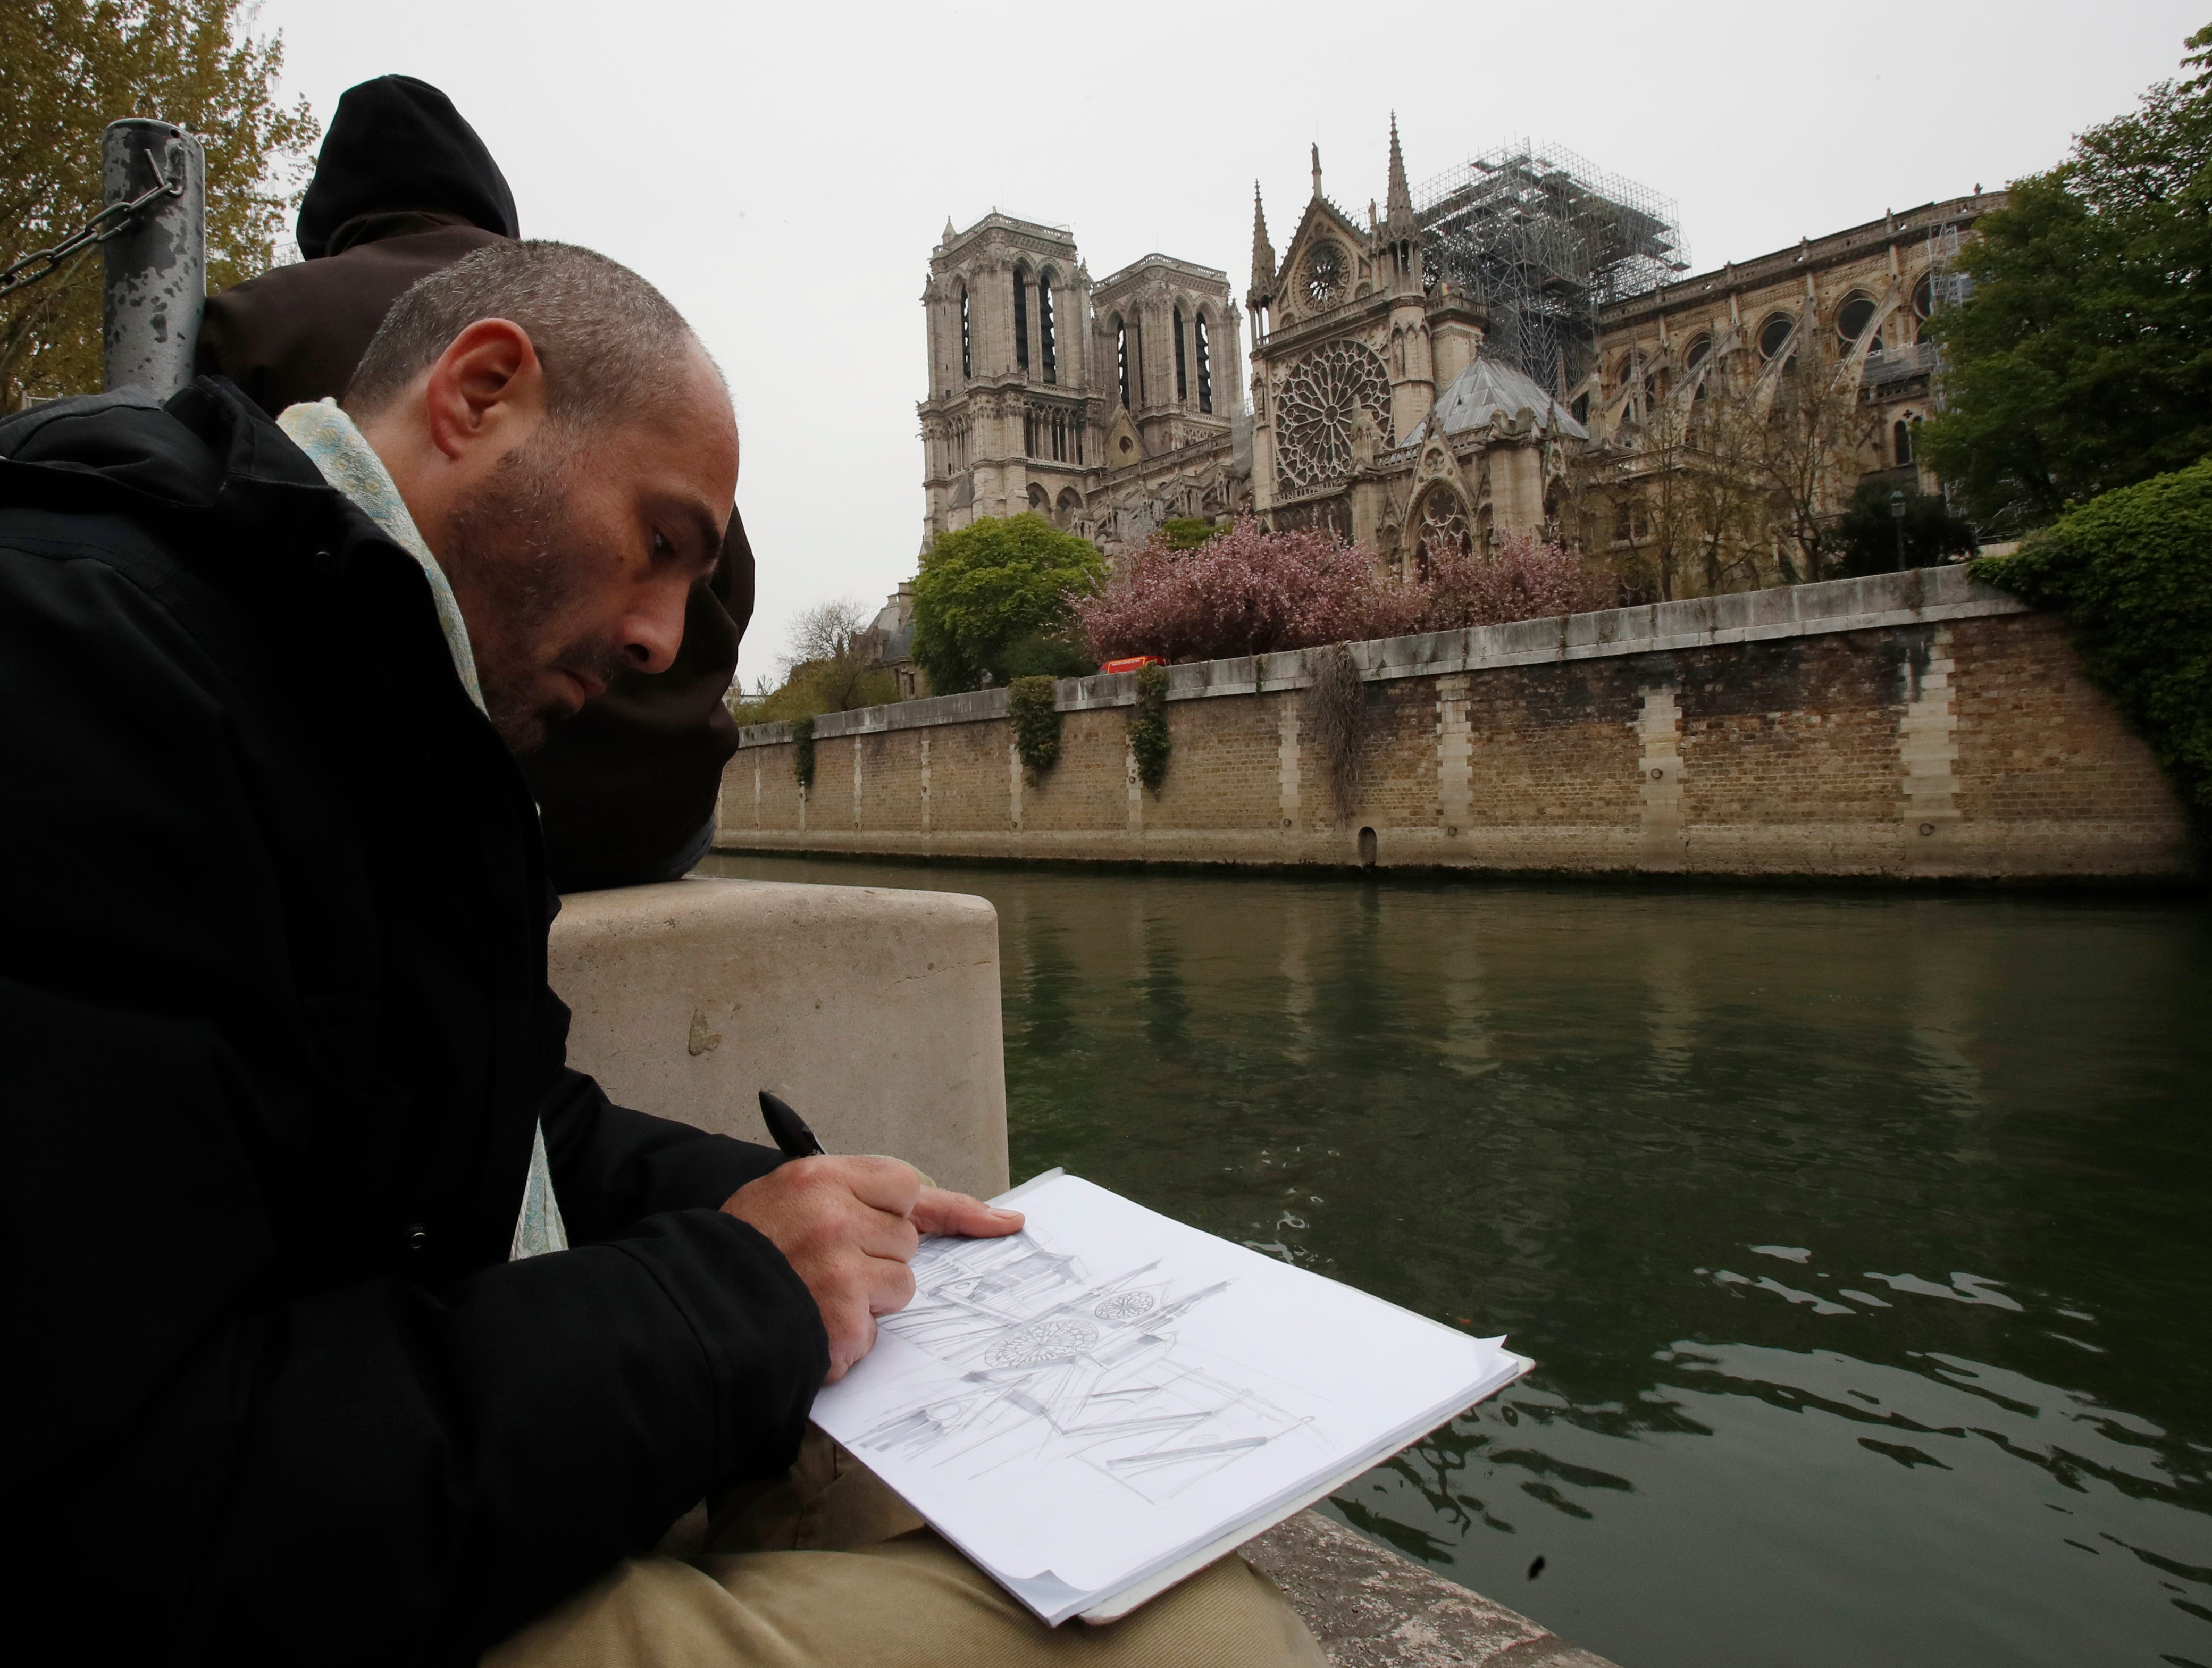 Man makes a drawing of the Notre Dame cathedral after the fire in Paris, Tuesday, April 16, 2019. Experts are assessing the blackened shell of Paris' iconic Notre Dame cathedral to establish next steps to save what remains after a devastating fire destroyed much of the almost 900-year-old building. With the fire that broke out Monday evening and quickly consumed the cathedral now under control, attention is turning to ensuring the structural integrity of the remaining building. (AP Photo/Christophe Ena)